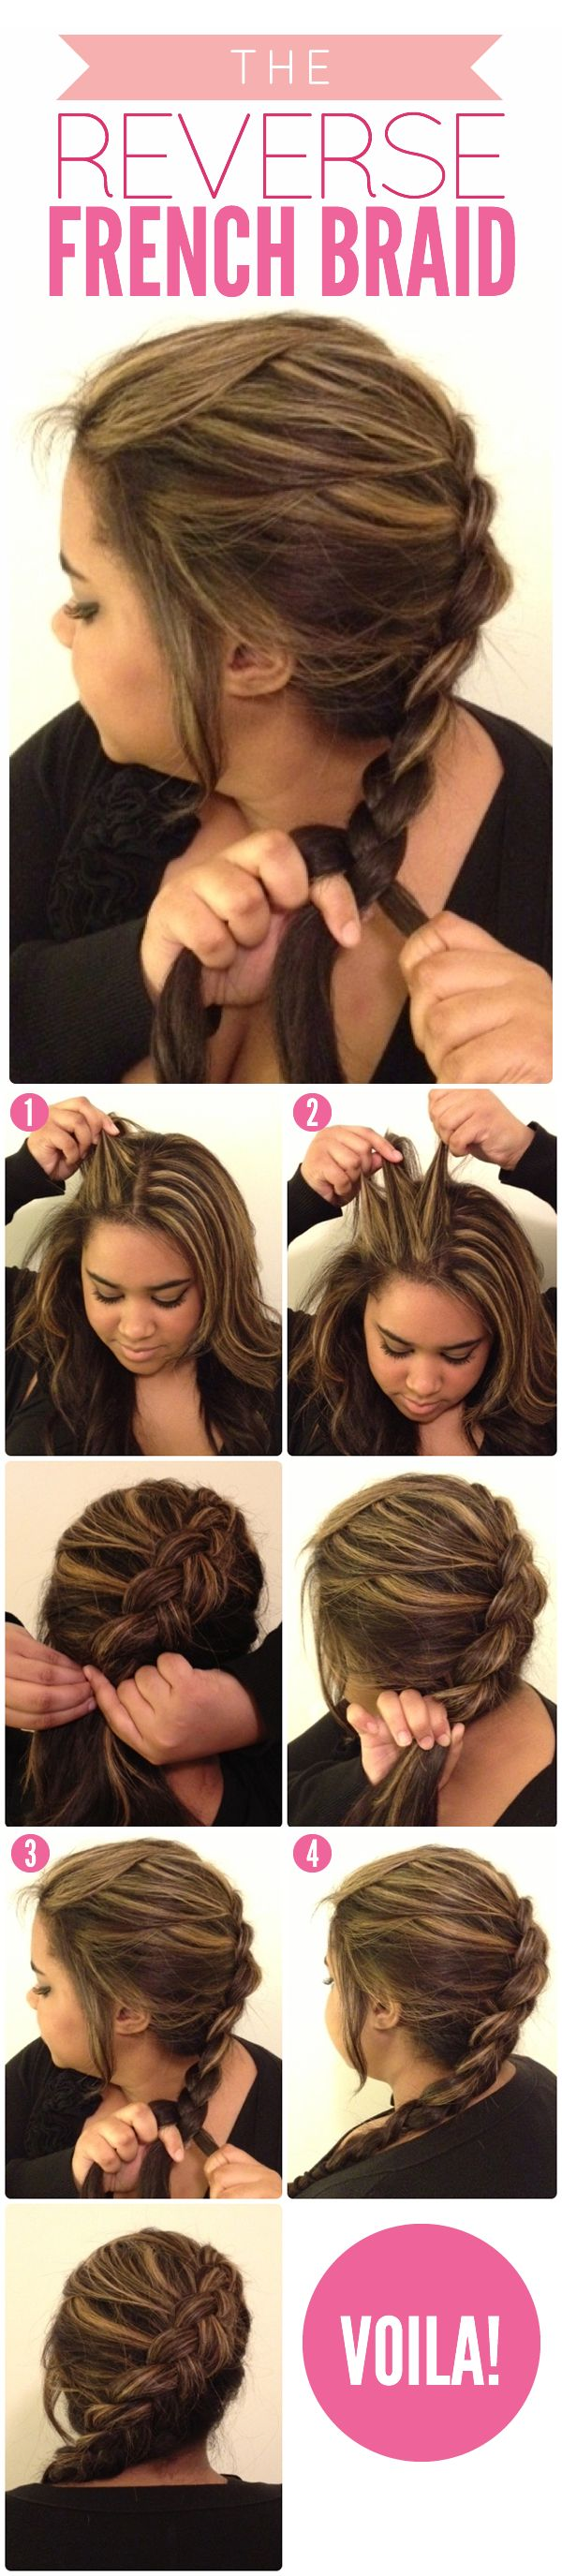 Pretty Hairstyles French Braid Tutorials Pretty Designs